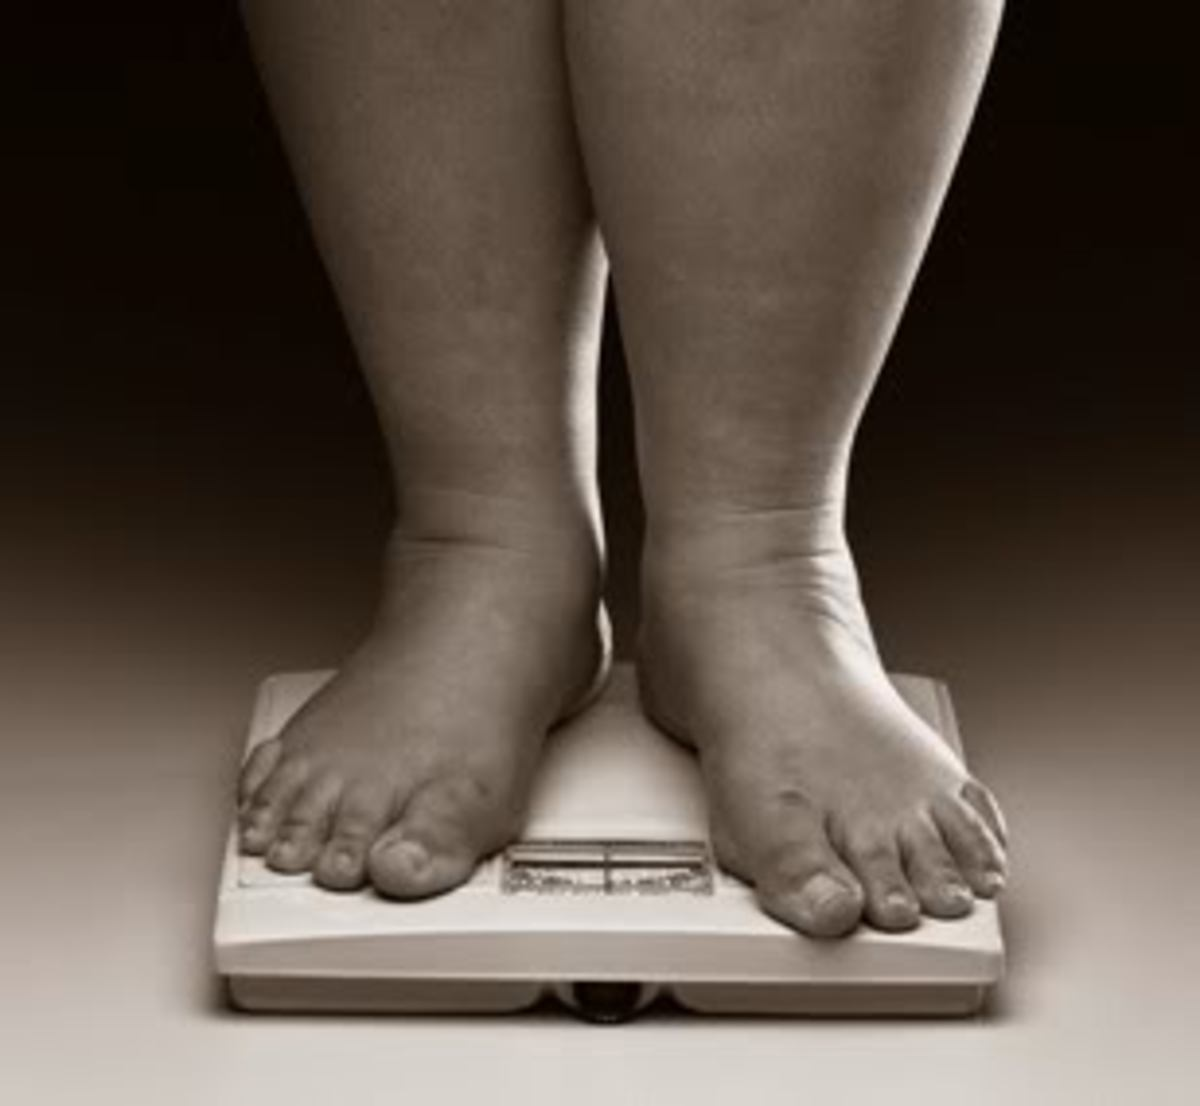 In modern research, weight gain is often linked to brain disorders or genetic adaptations inherited from your parents, not so much will power and discipline. But does this mean you are doomed to be fat forever?